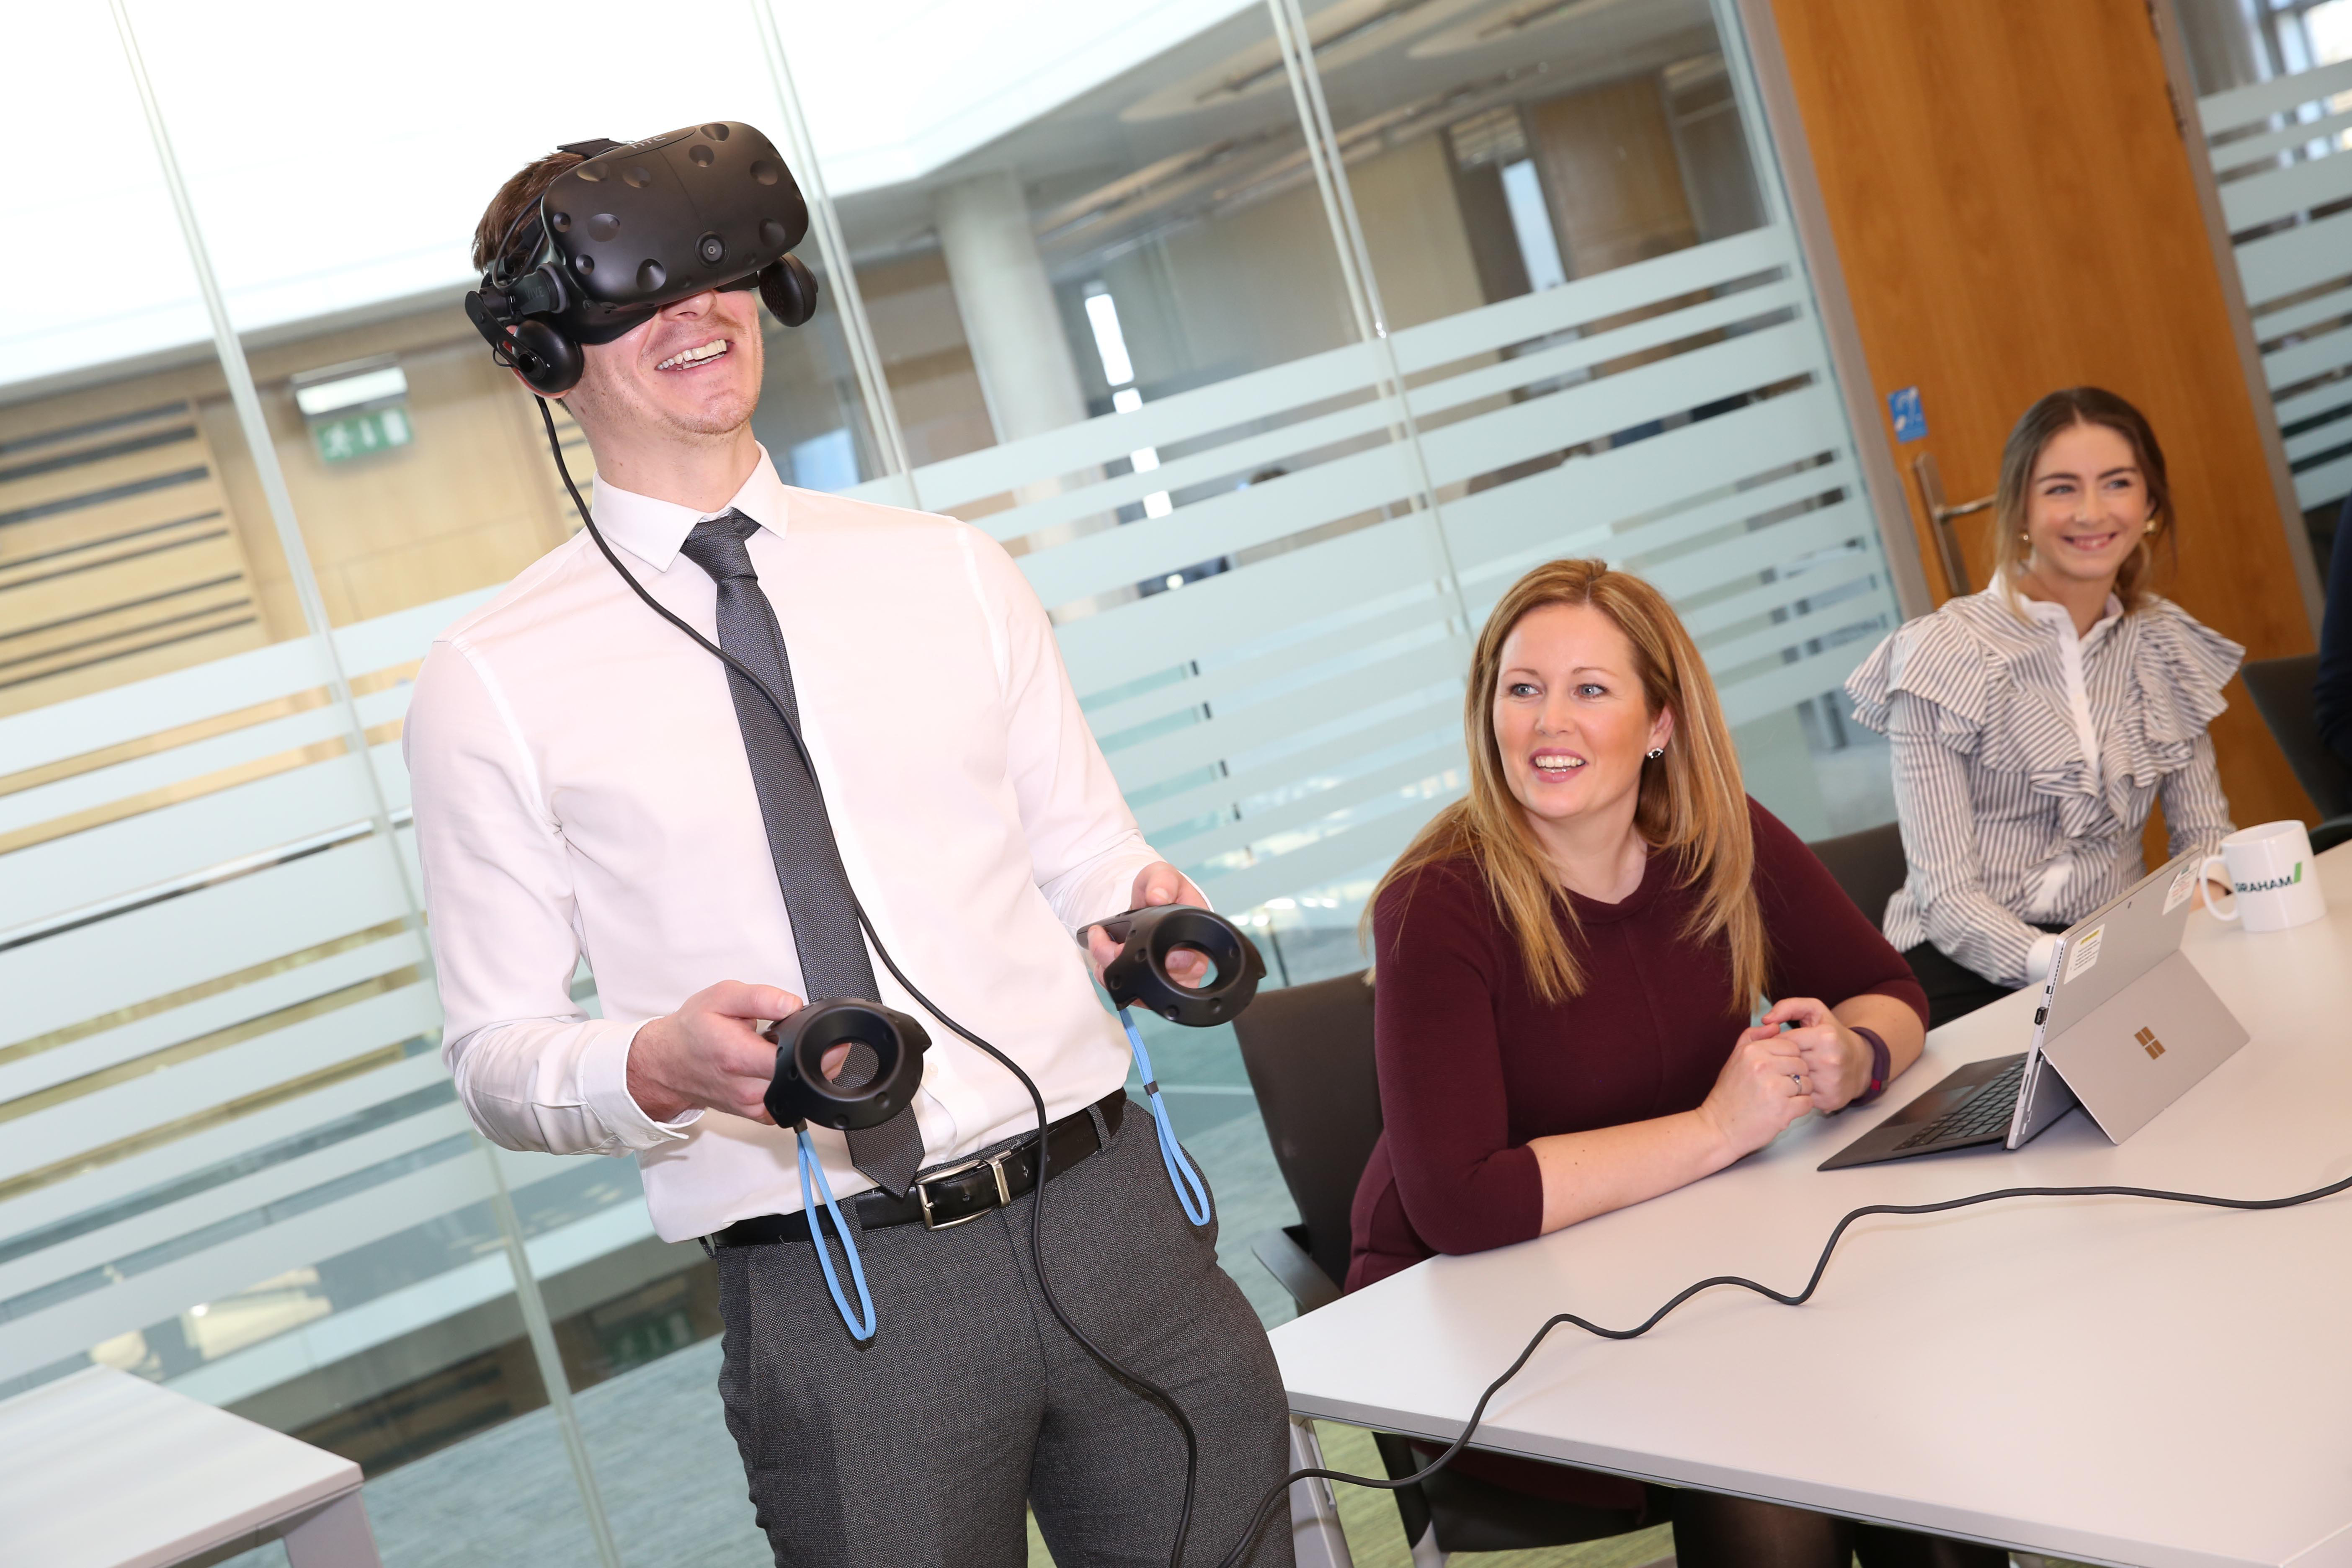 Cancer care clinicians treated to VR 'walk around' image